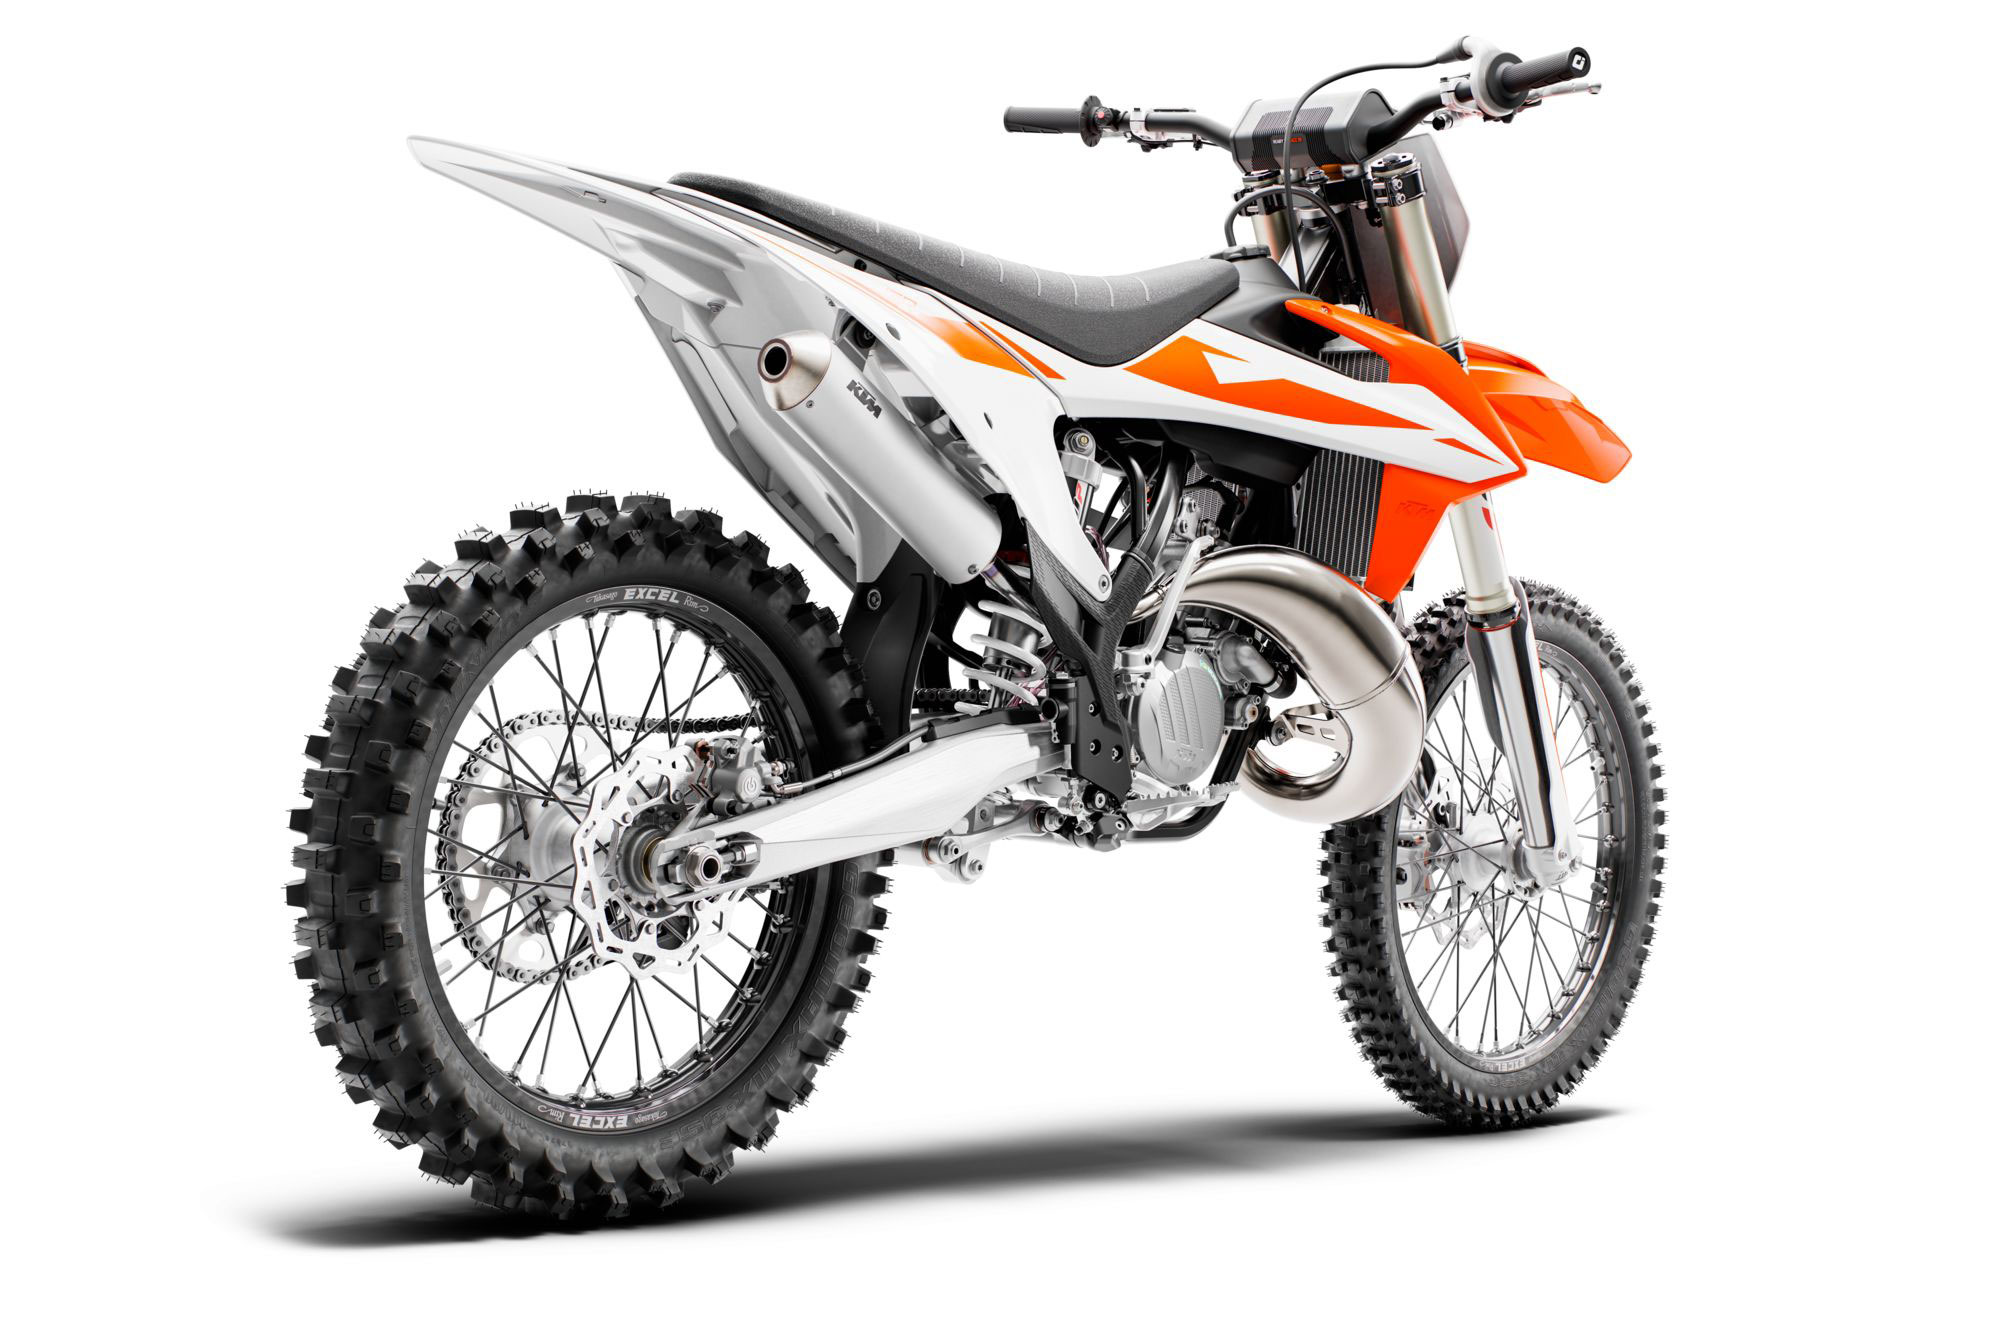 2019 KTM 150 SX Guide • Total Motorcycle